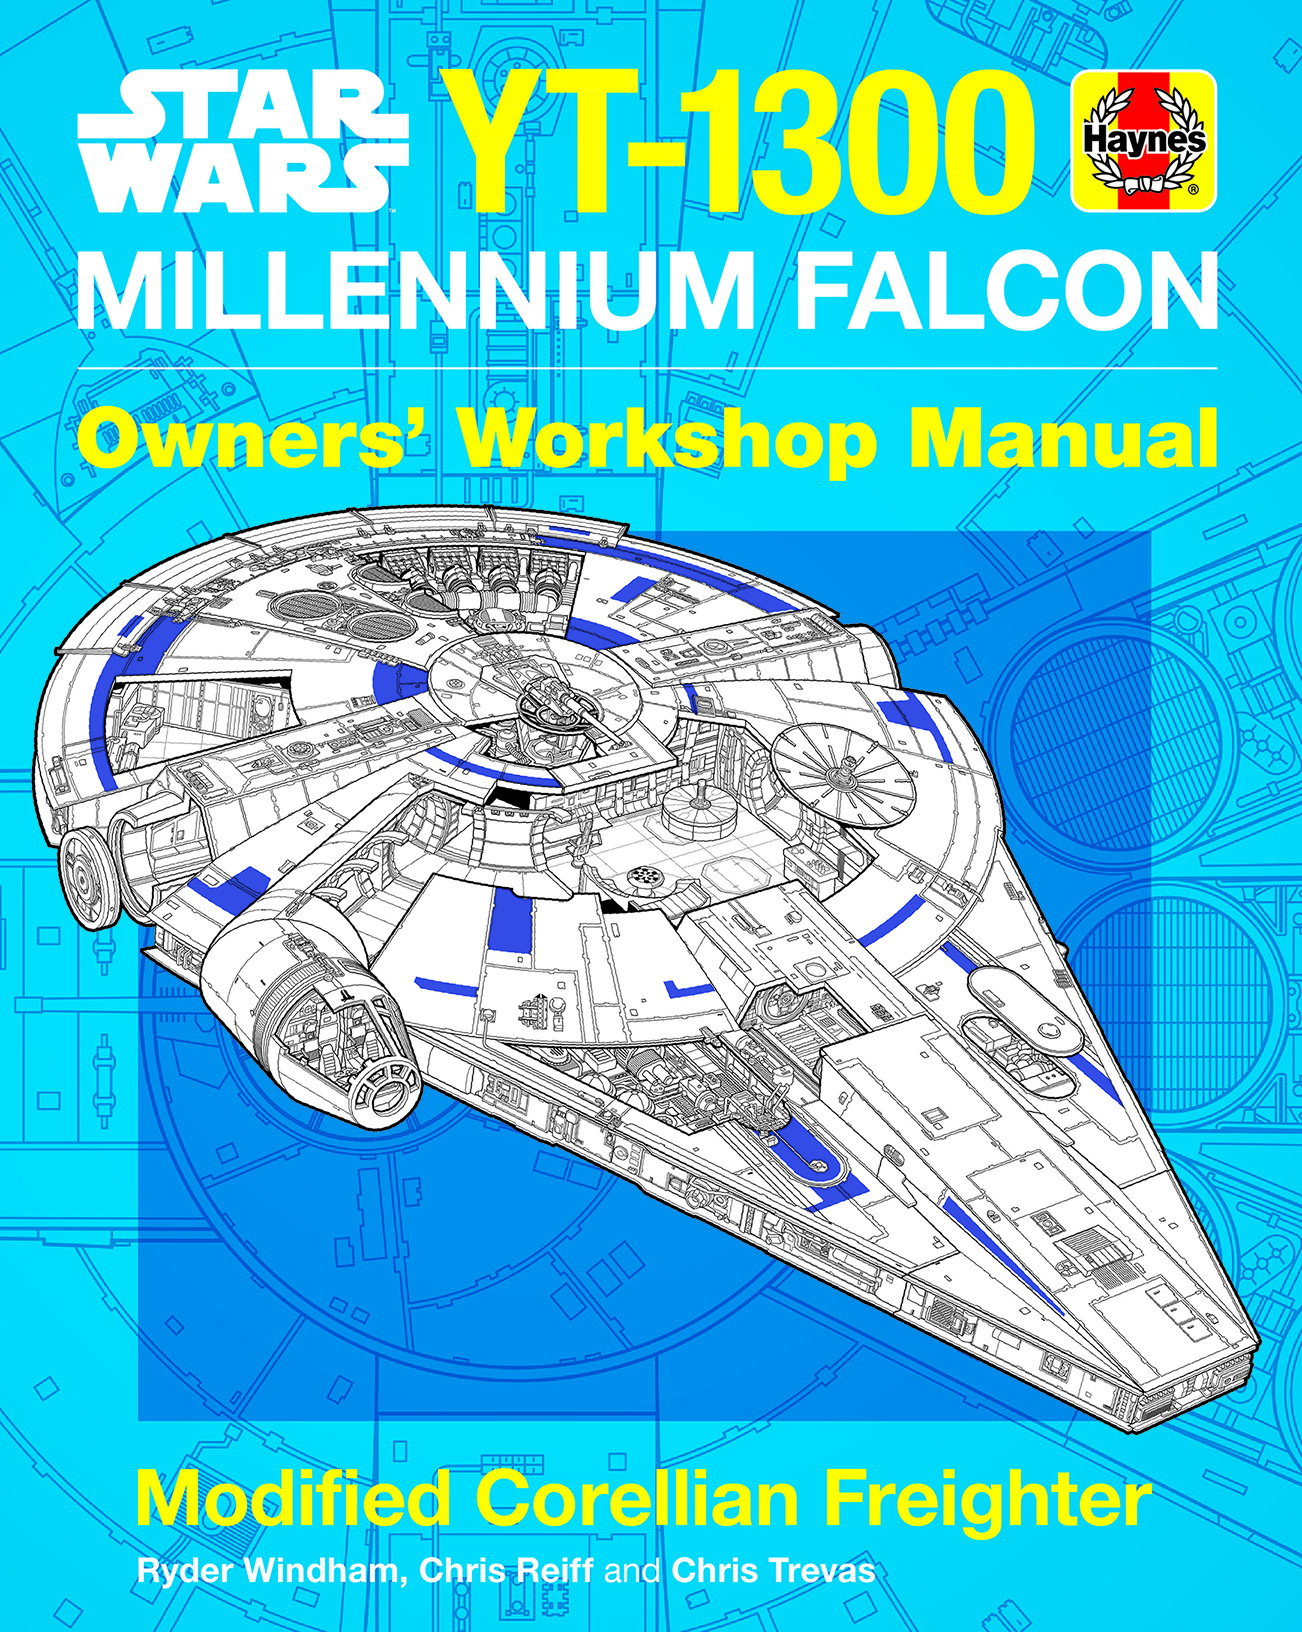 YT-1300 Corellian Freighter Owner's Workshop Manual